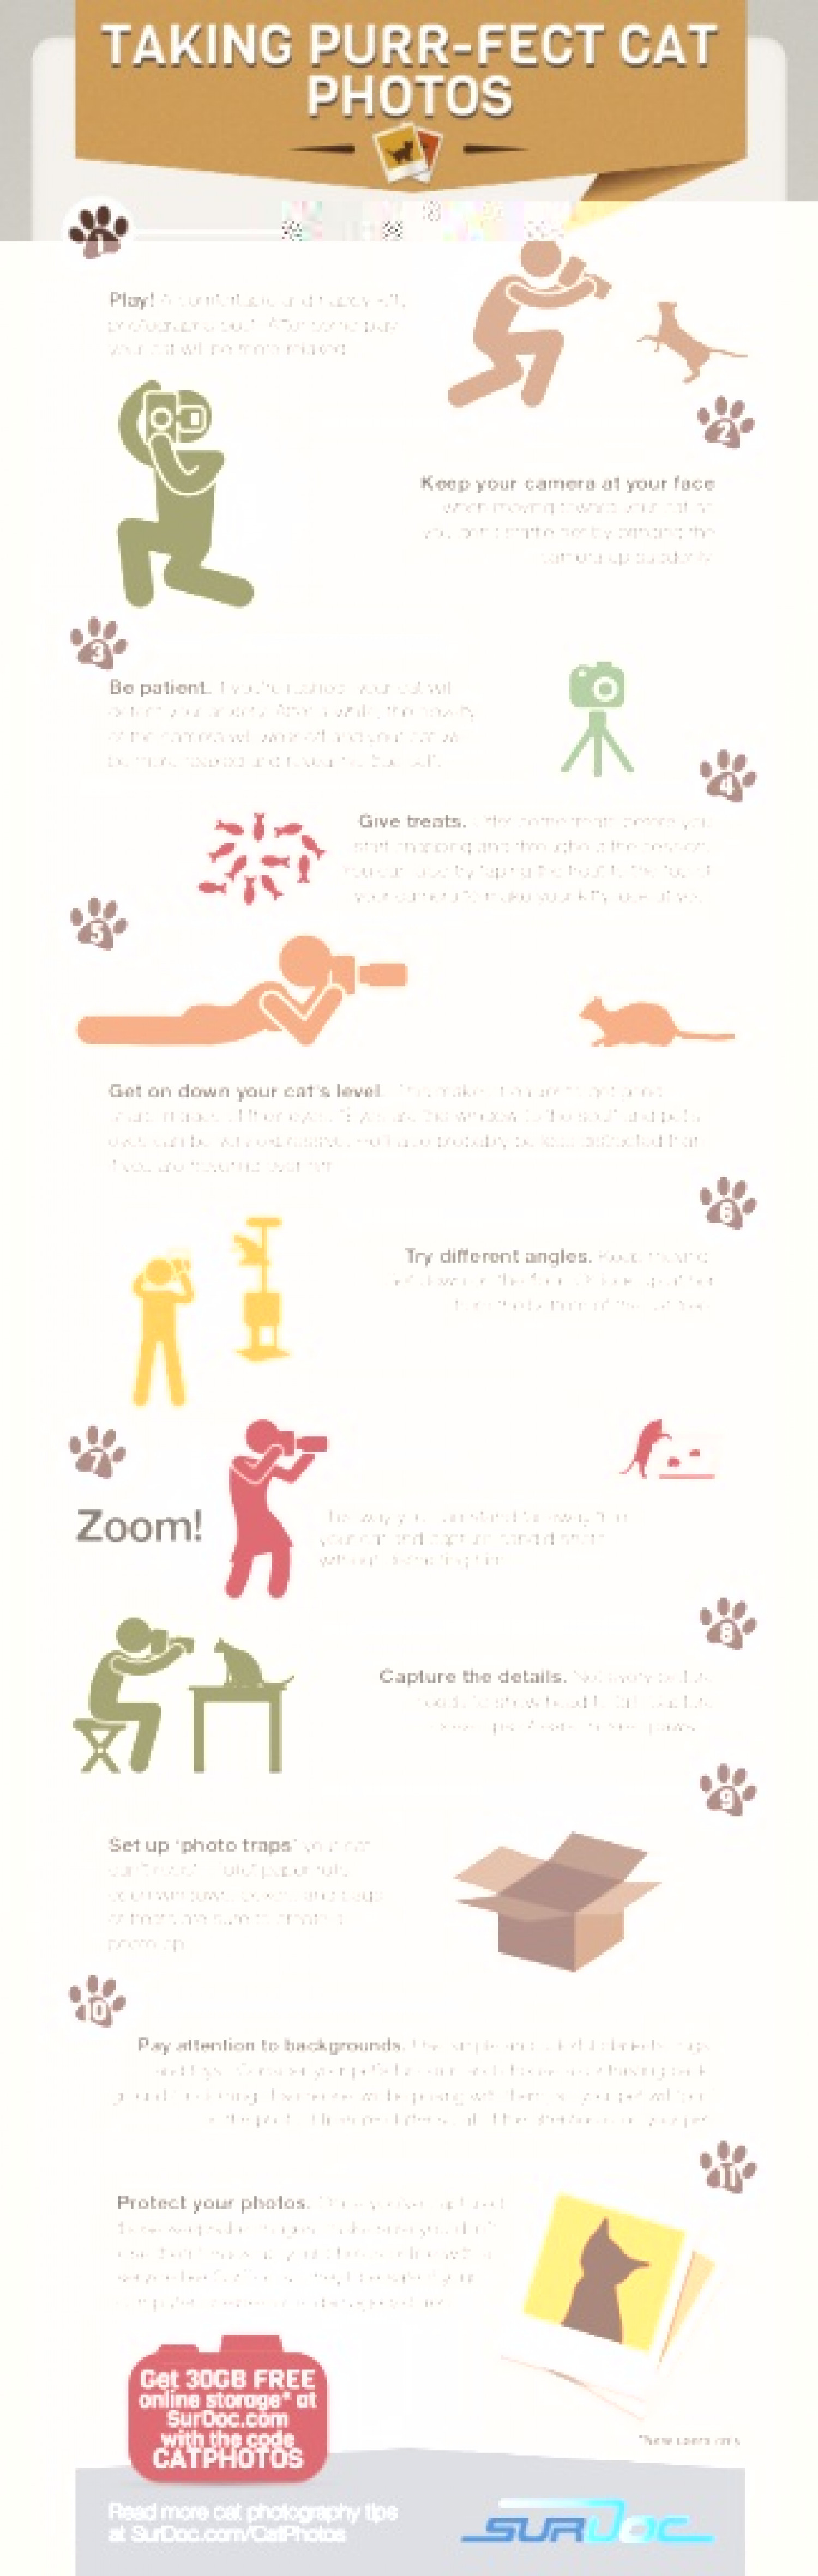 7 Steps to Taking Purfect Cat Photos Infographic